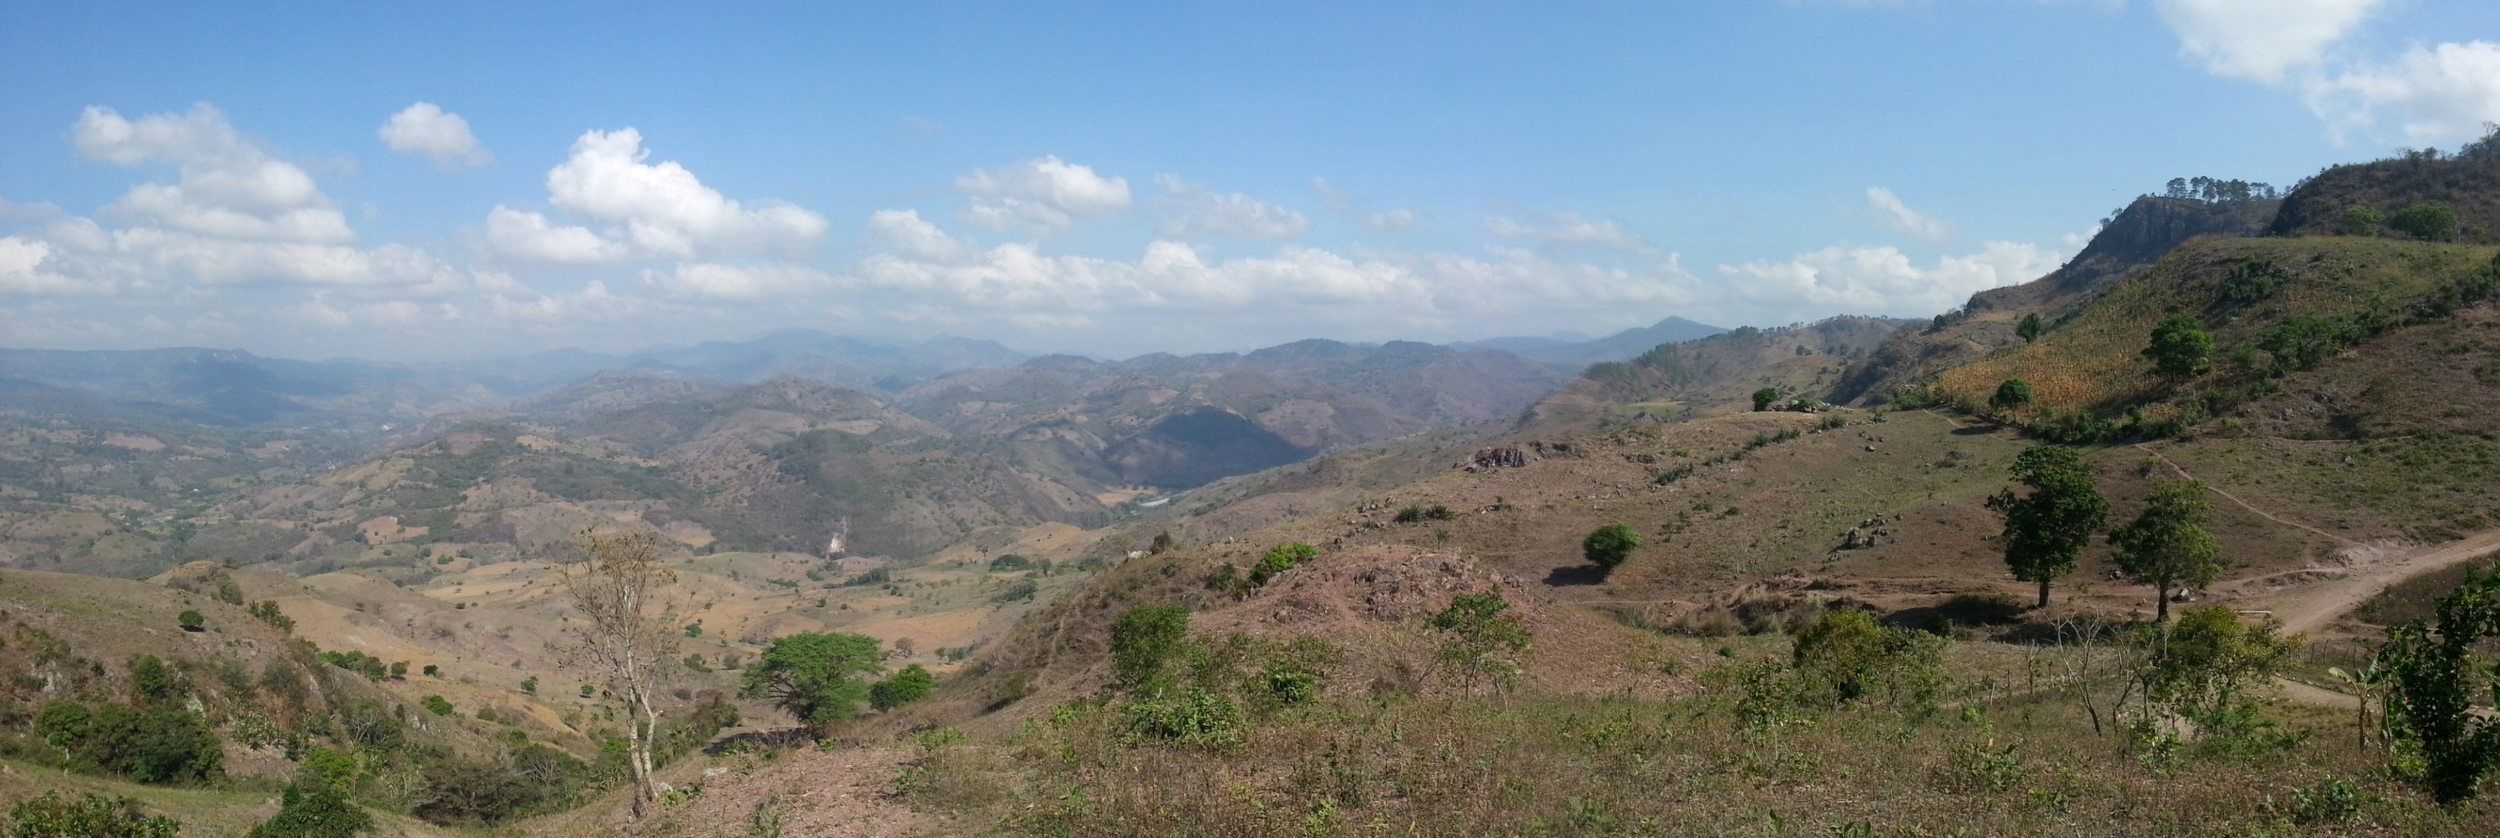 The beautiful Honduran landscape that we miss!